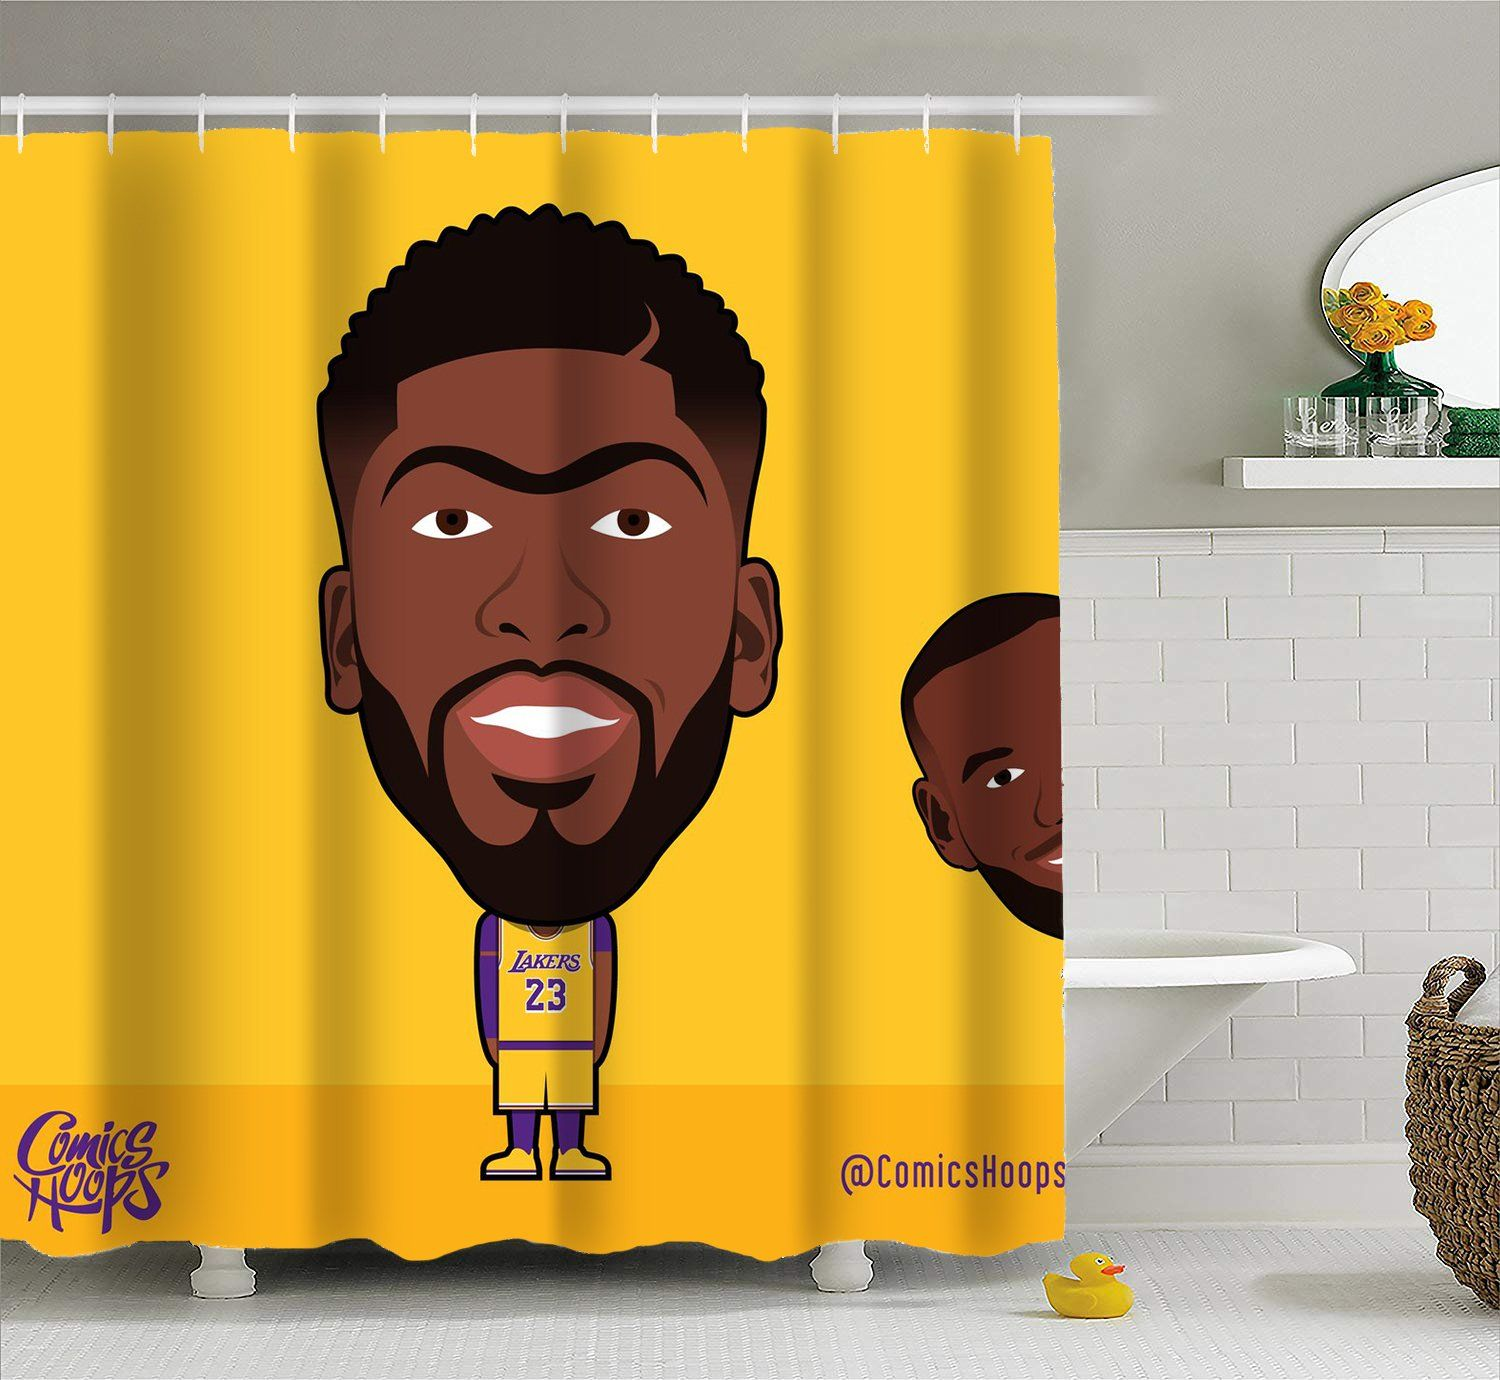 Anthony Davis Cartoon Shower Curtain For Bathroom With Hooks Extra